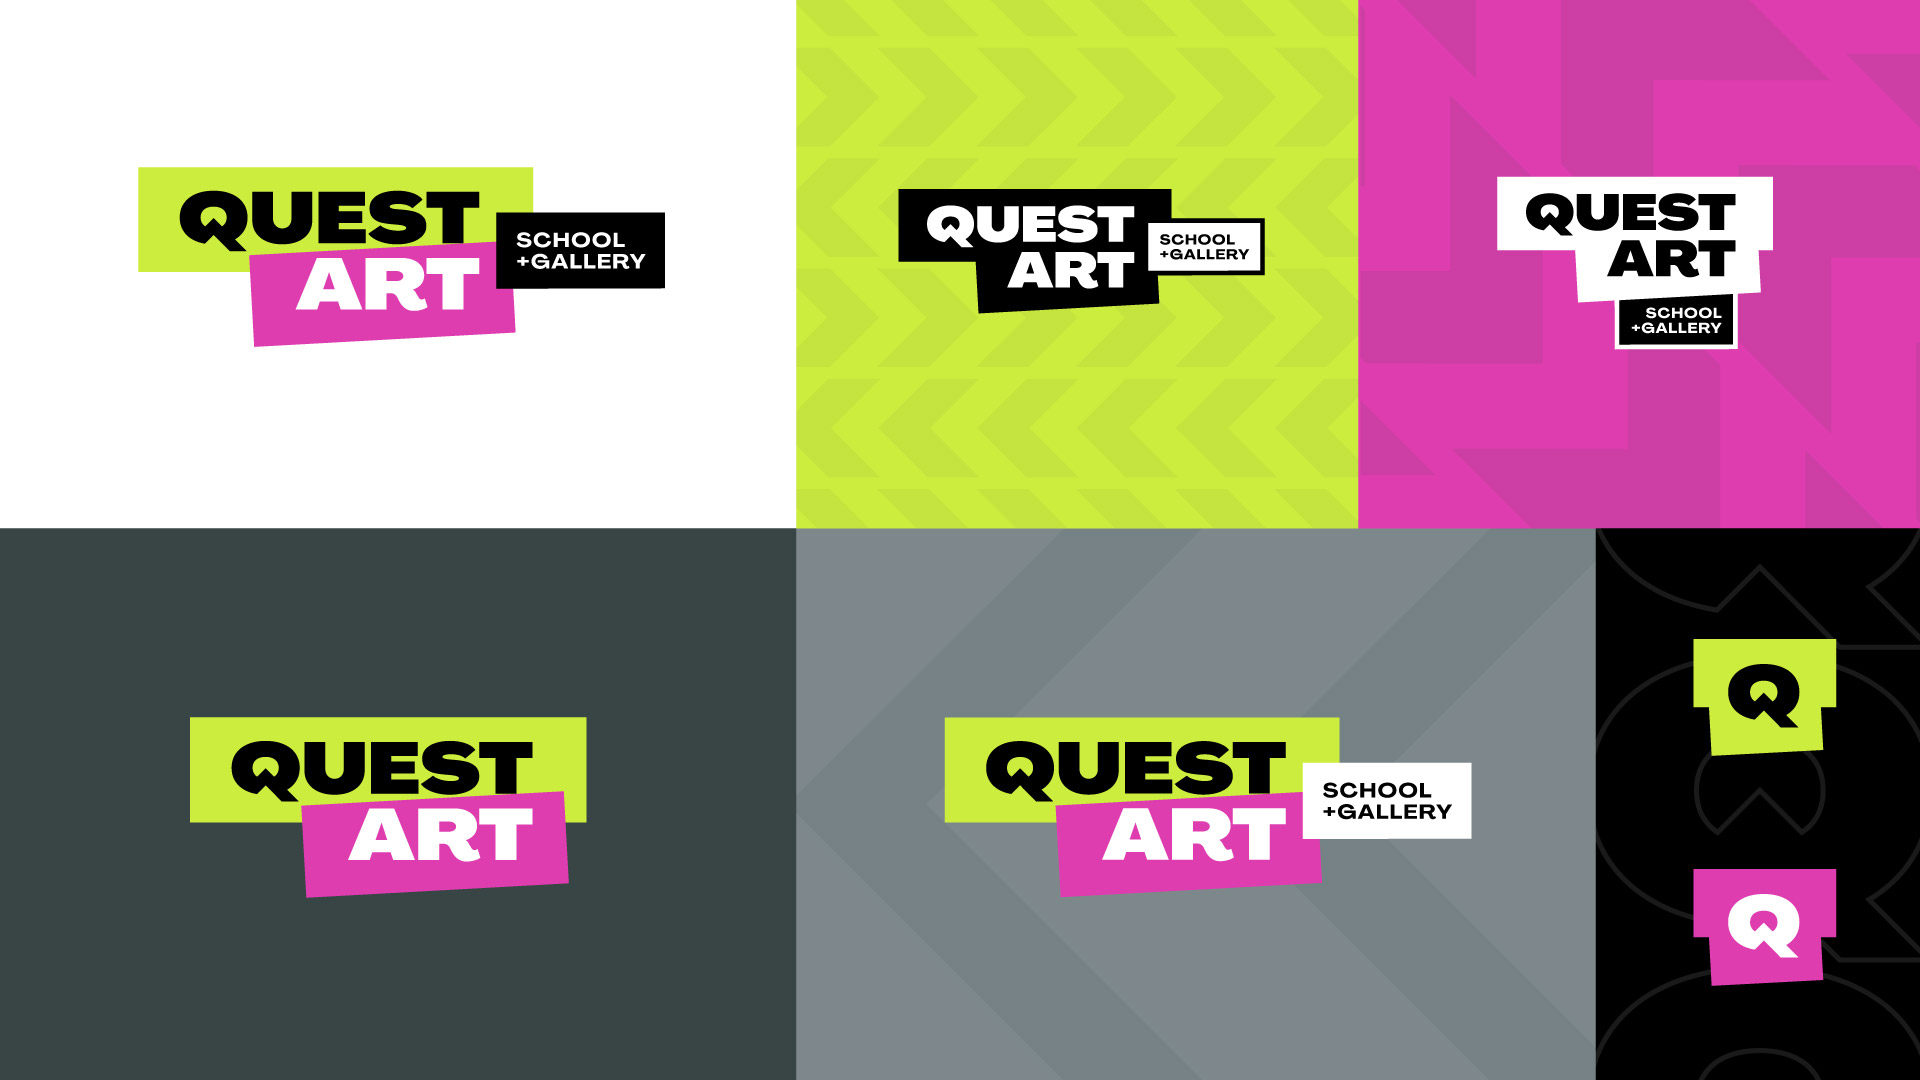 quest art school and gallery logo variations